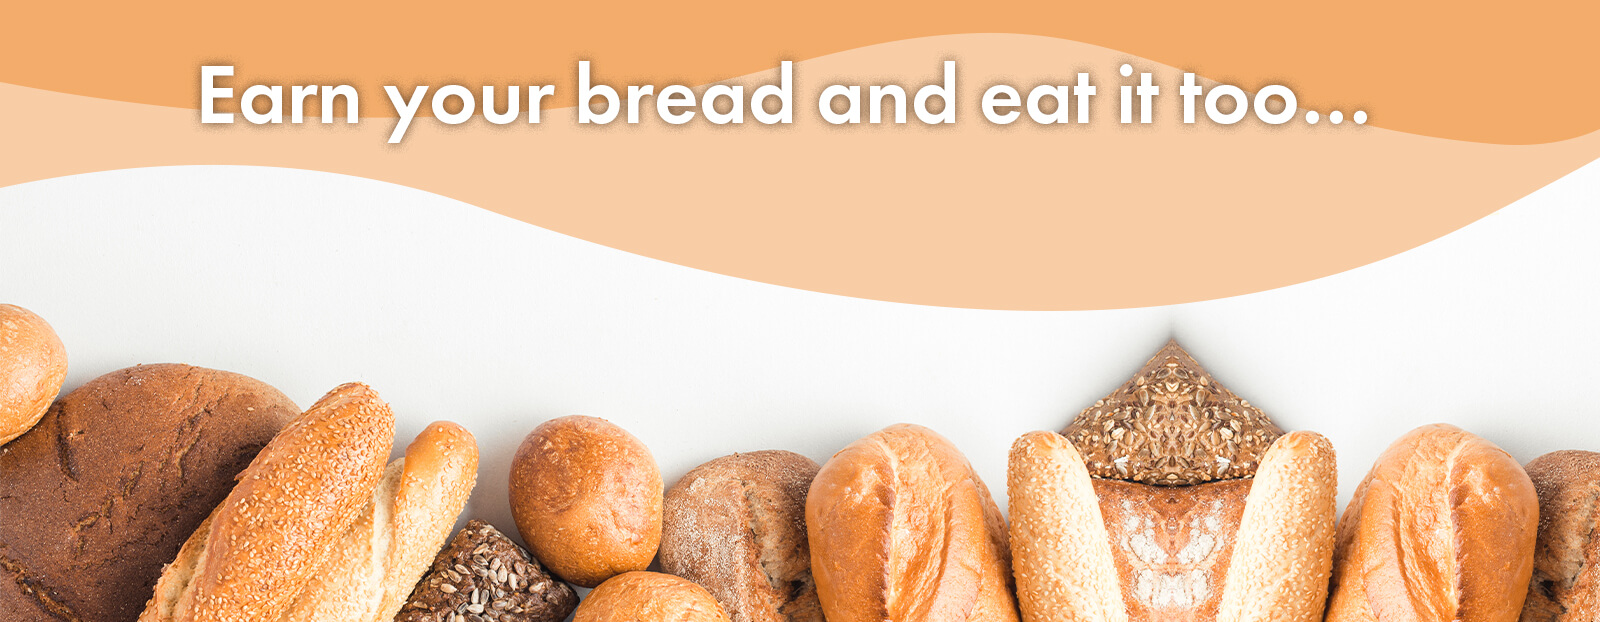 Earn your bread and eat it too…